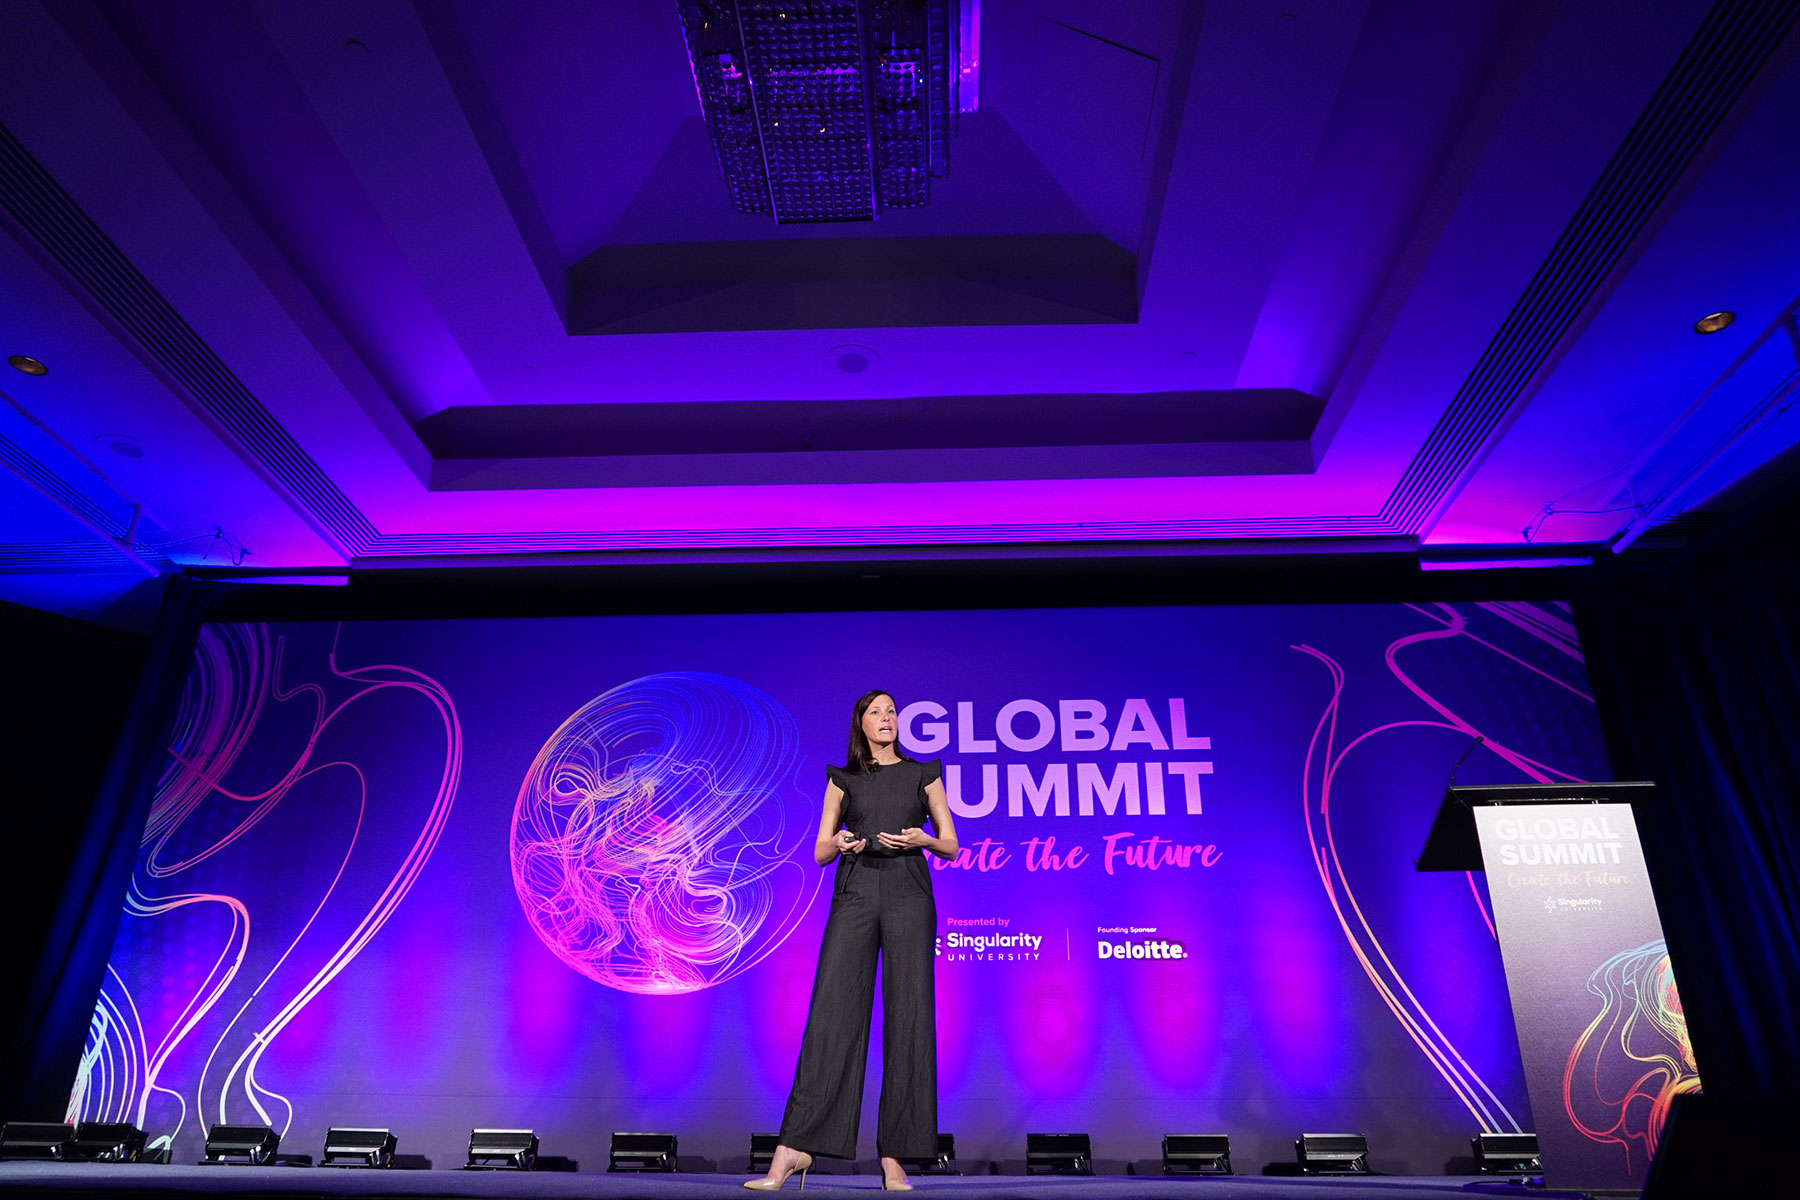 Singularity University's Global Summit 2019